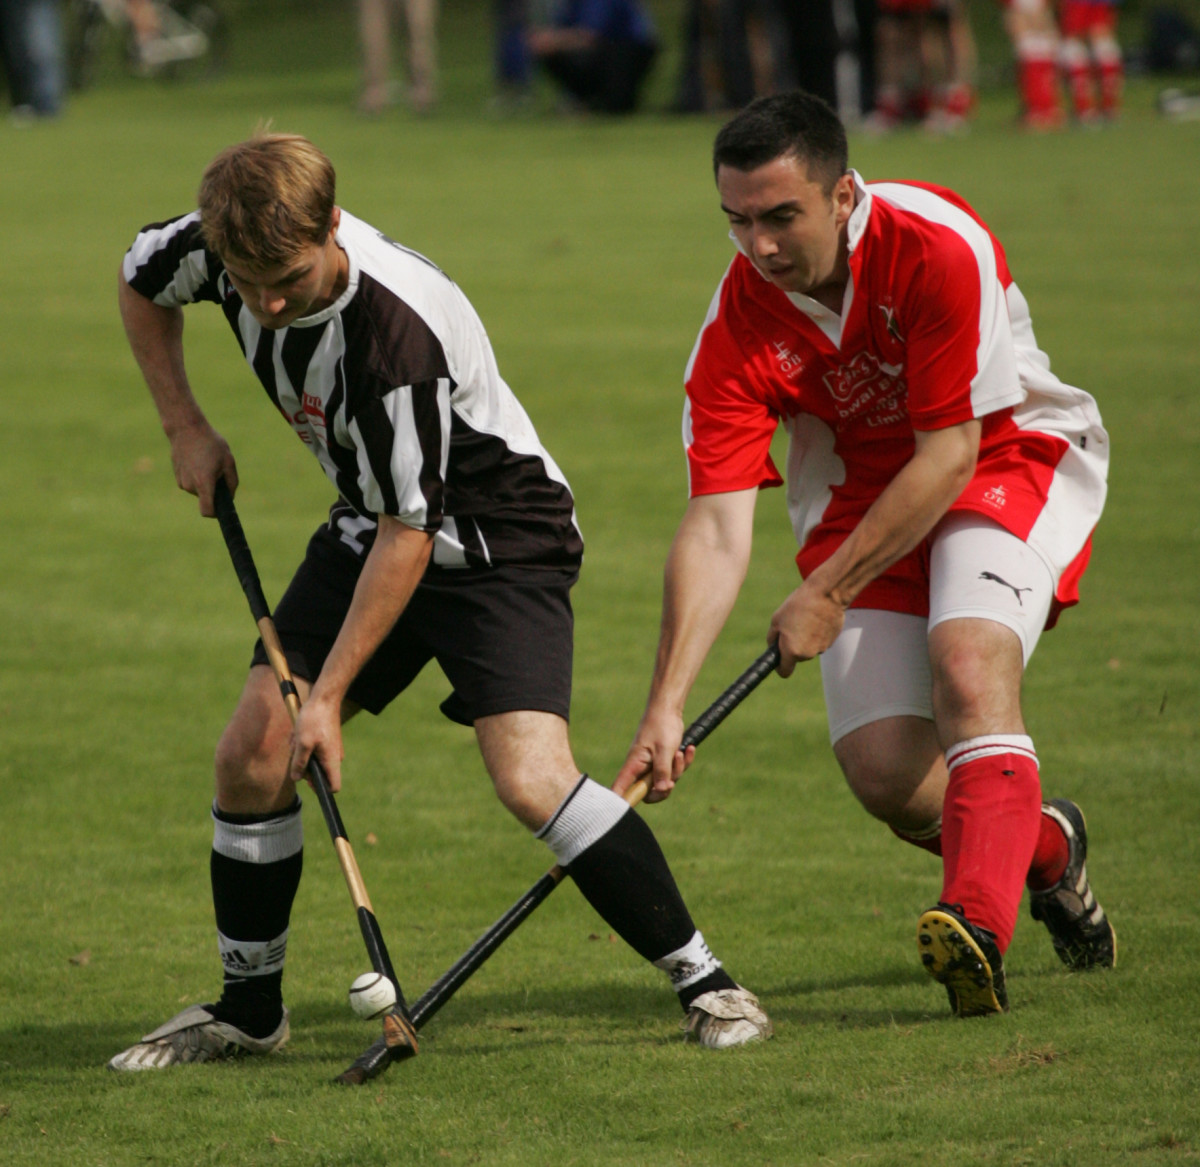 scottish-sports-a-beginners-guide-to-shinty